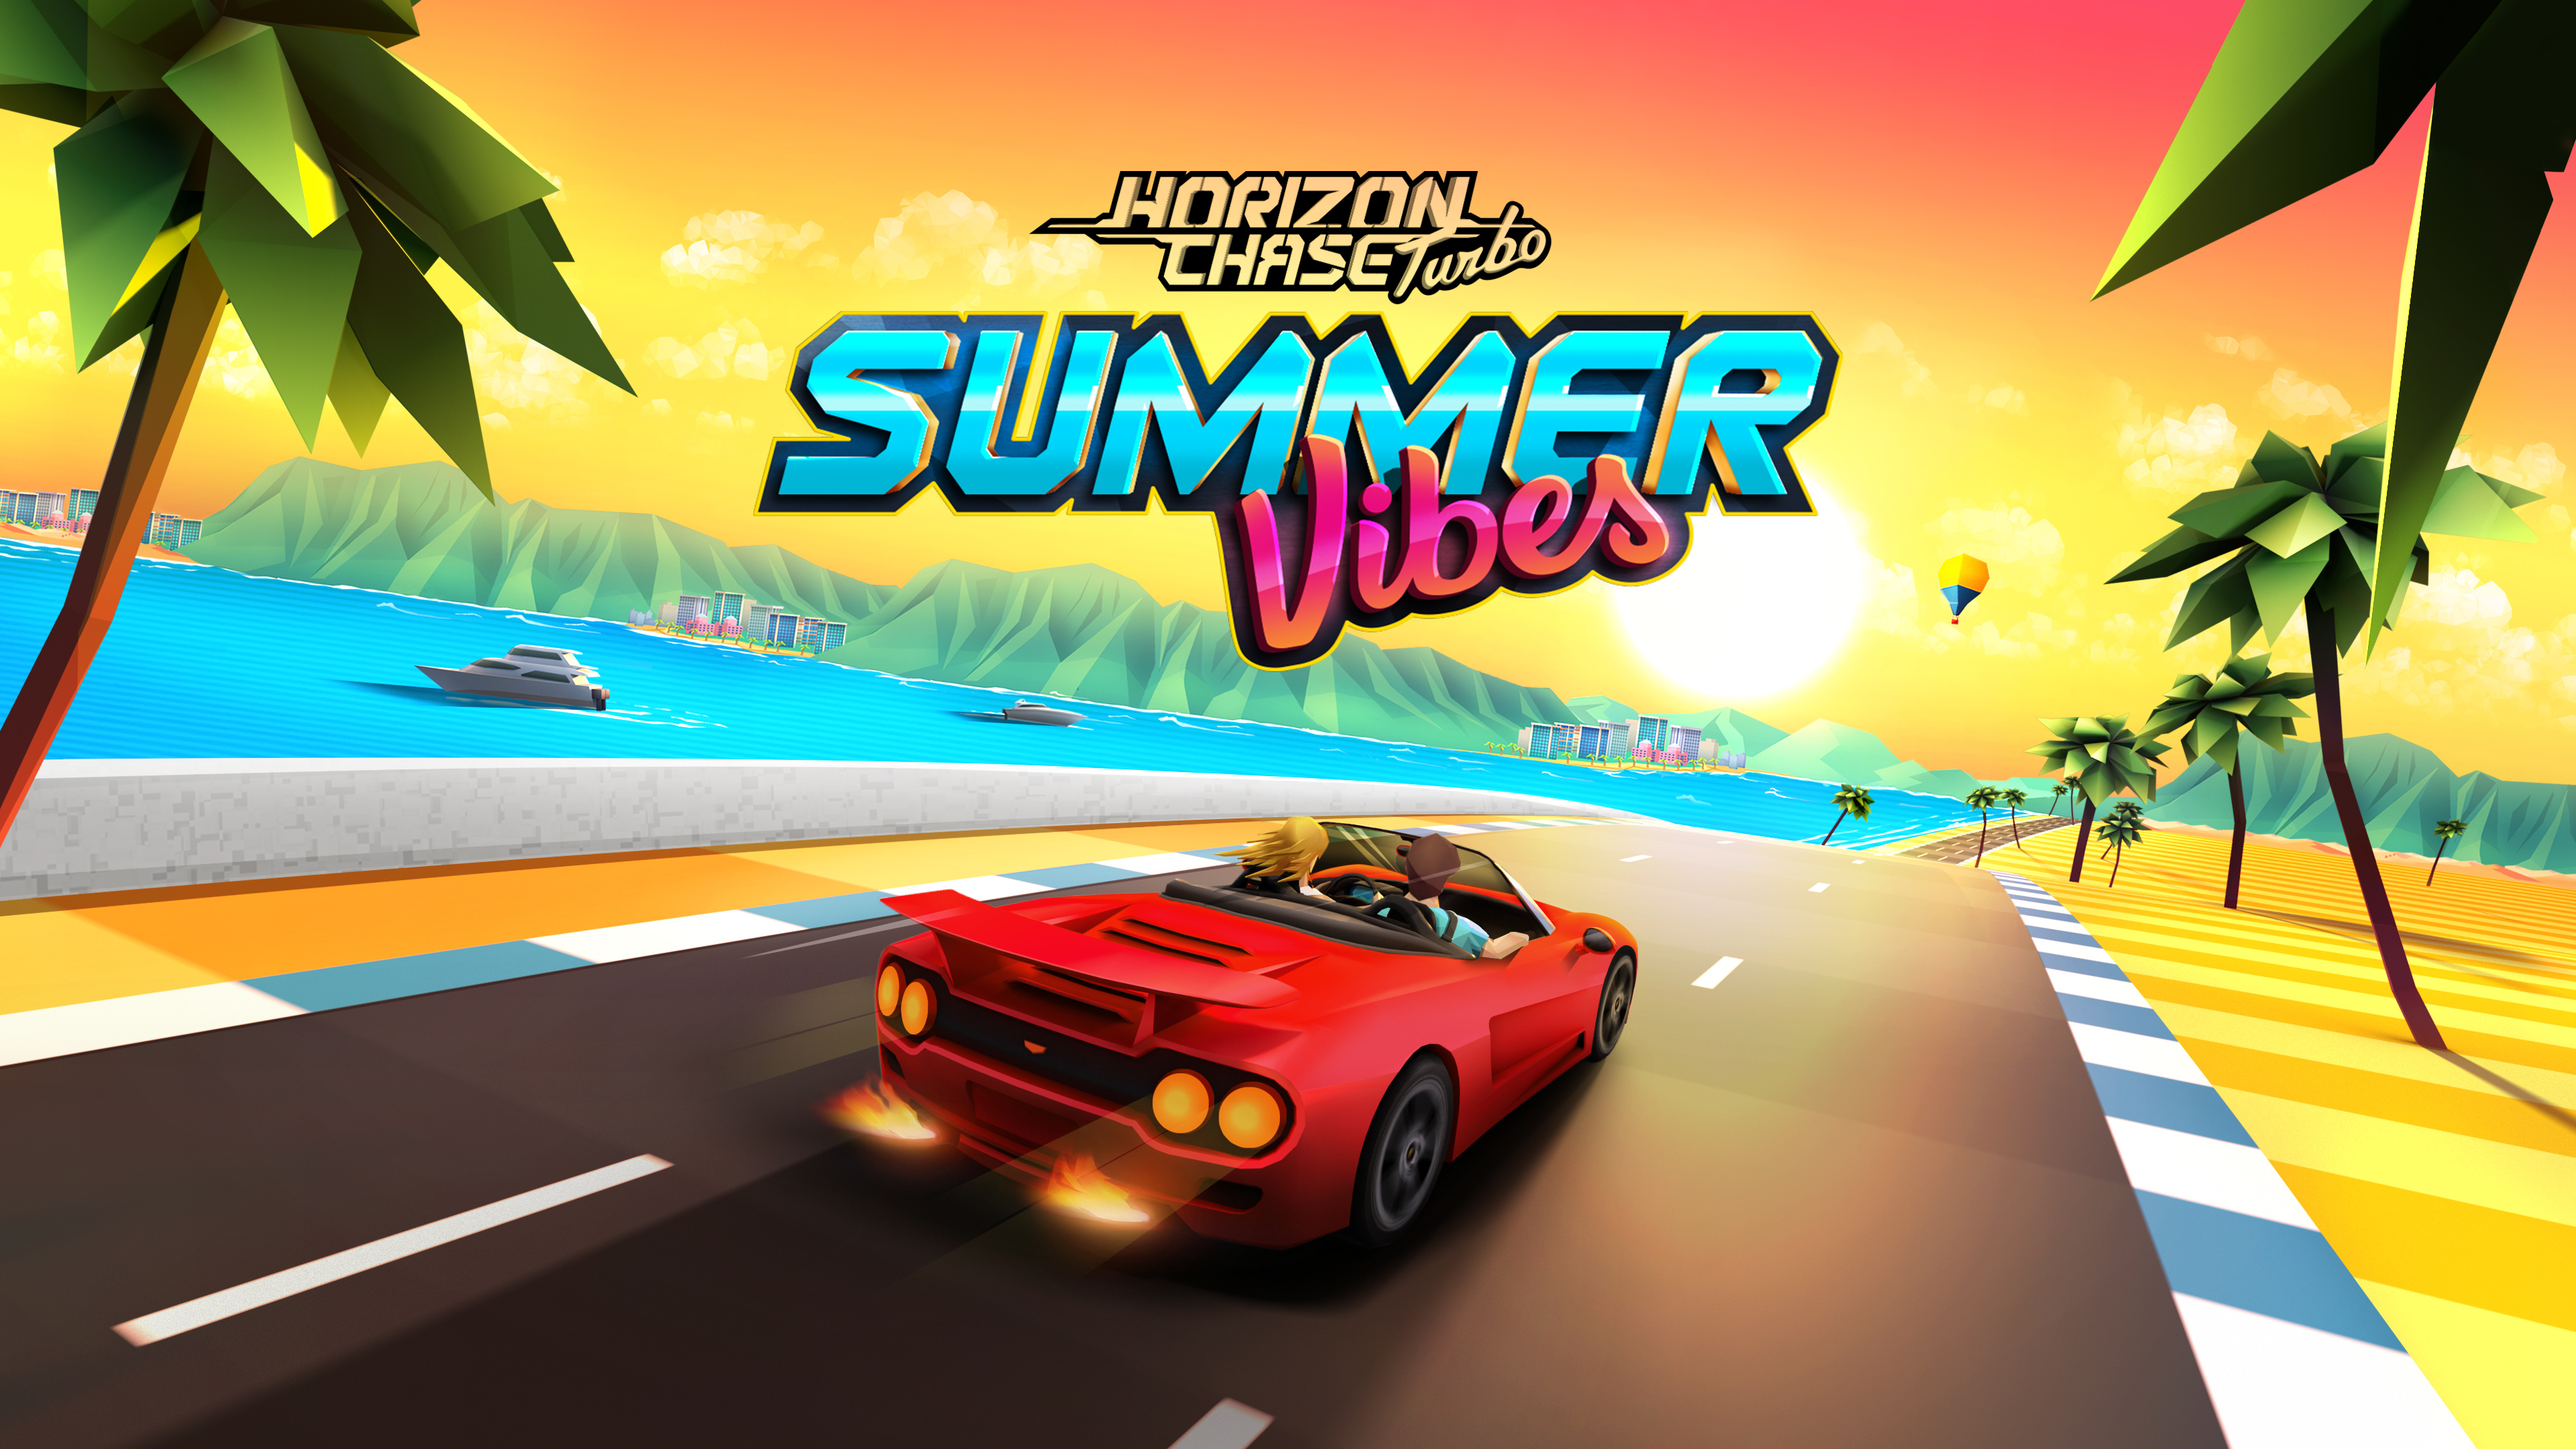 horizon chase turbo summer vibes 1568056354 - Horizon Chase Turbo Summer Vibes - hd-wallpapers, games wallpapers, 4k-wallpapers